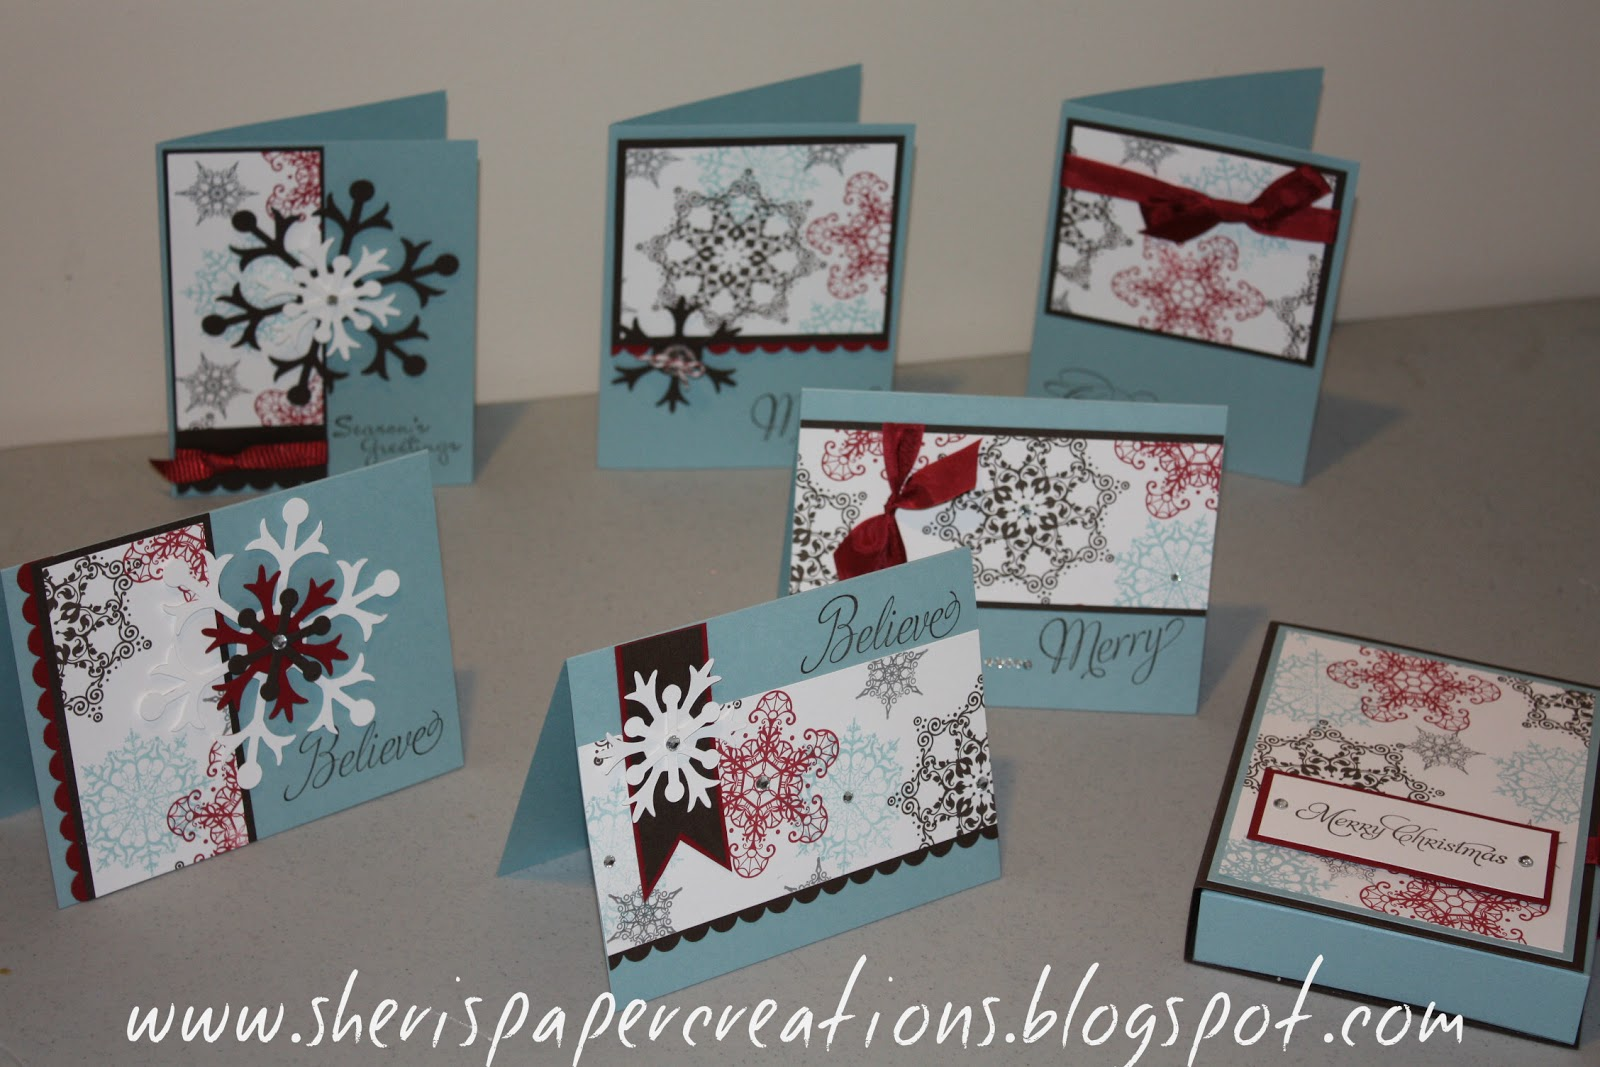 Sheri's Paper Creations: One Sheet Wonder Christmas Cards - photo#38